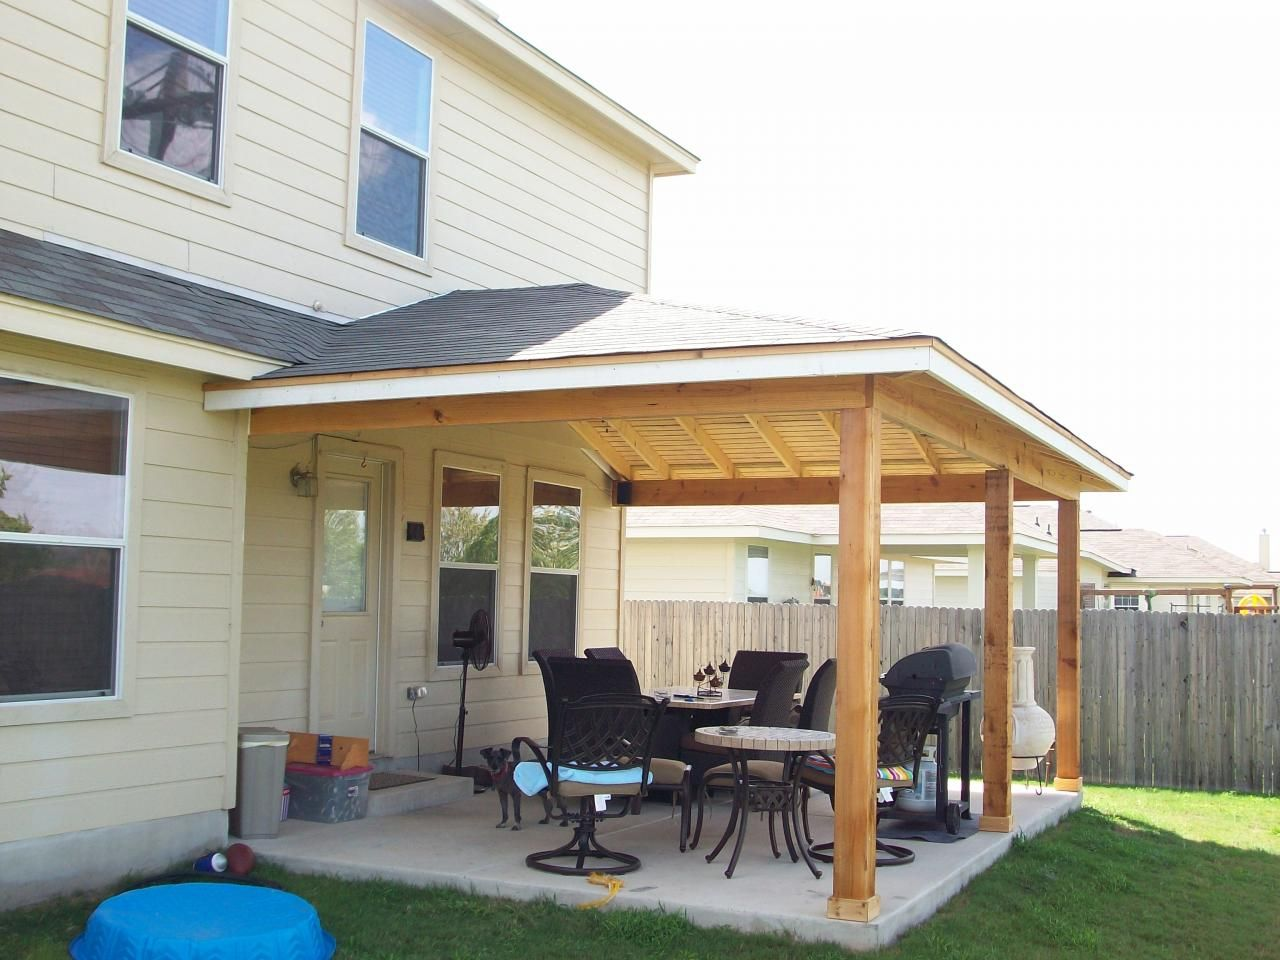 patio designs patio covers pictures video plans designs ideas free patio cover